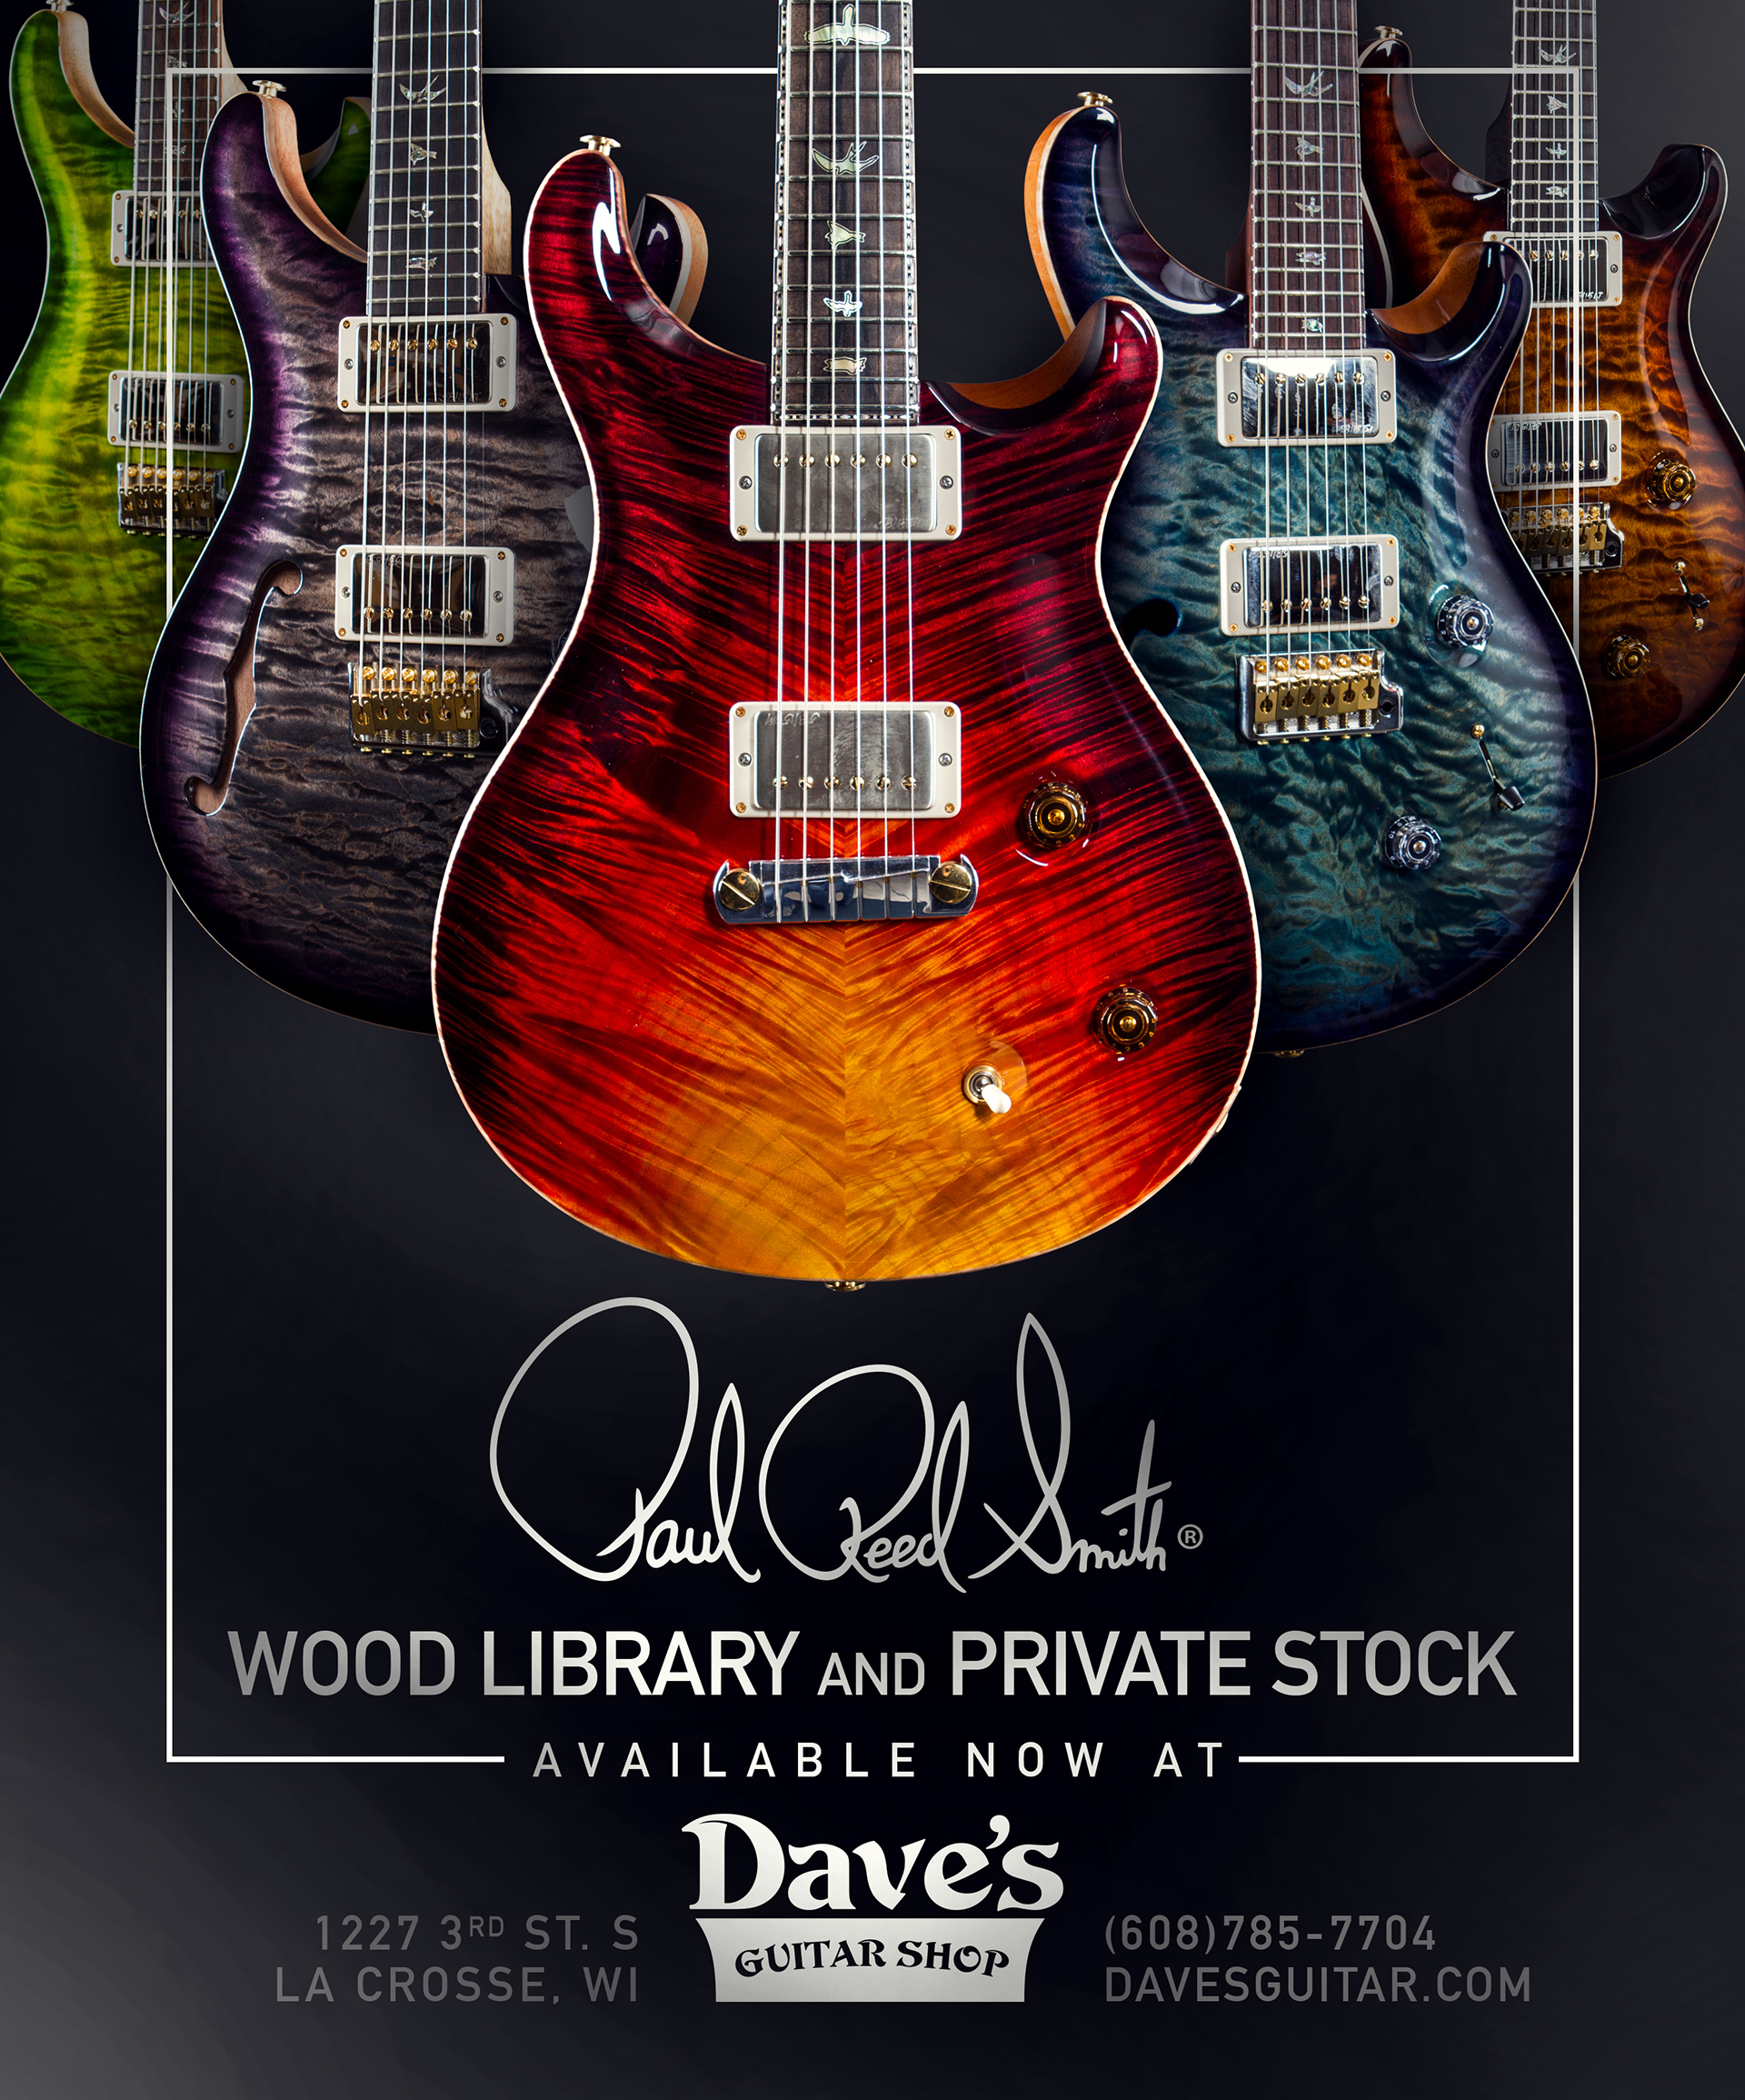 Paul Reed Smith Wood Library Ads - Dave's Guitar Shop on Behance